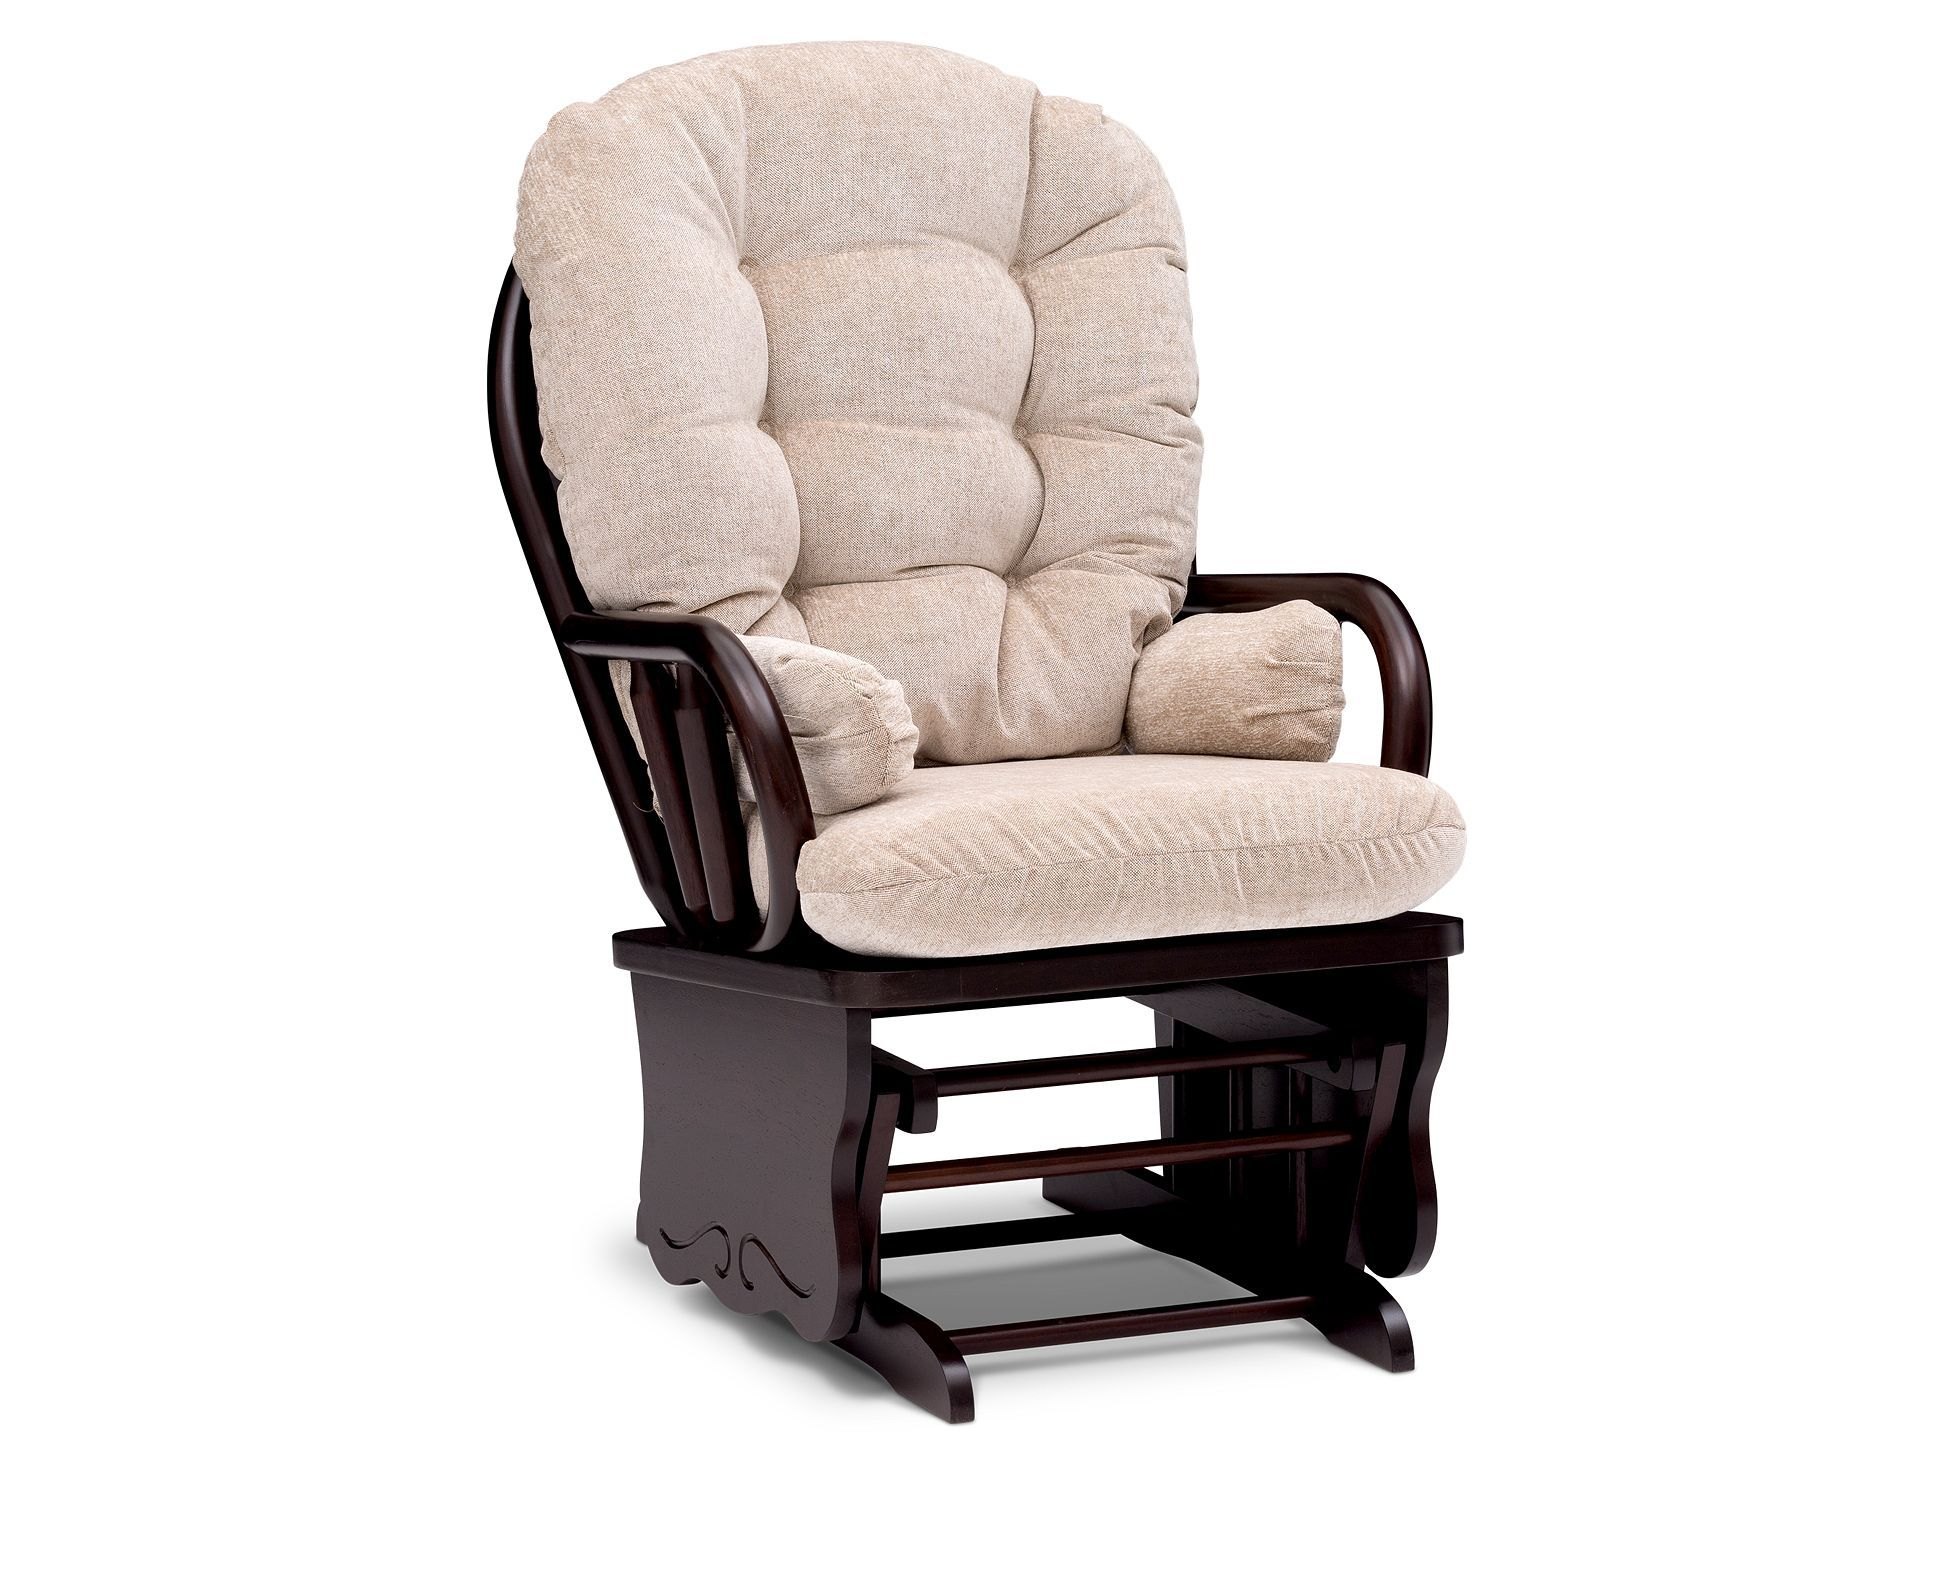 39+ Living room glider rocking chairs ideas in 2021